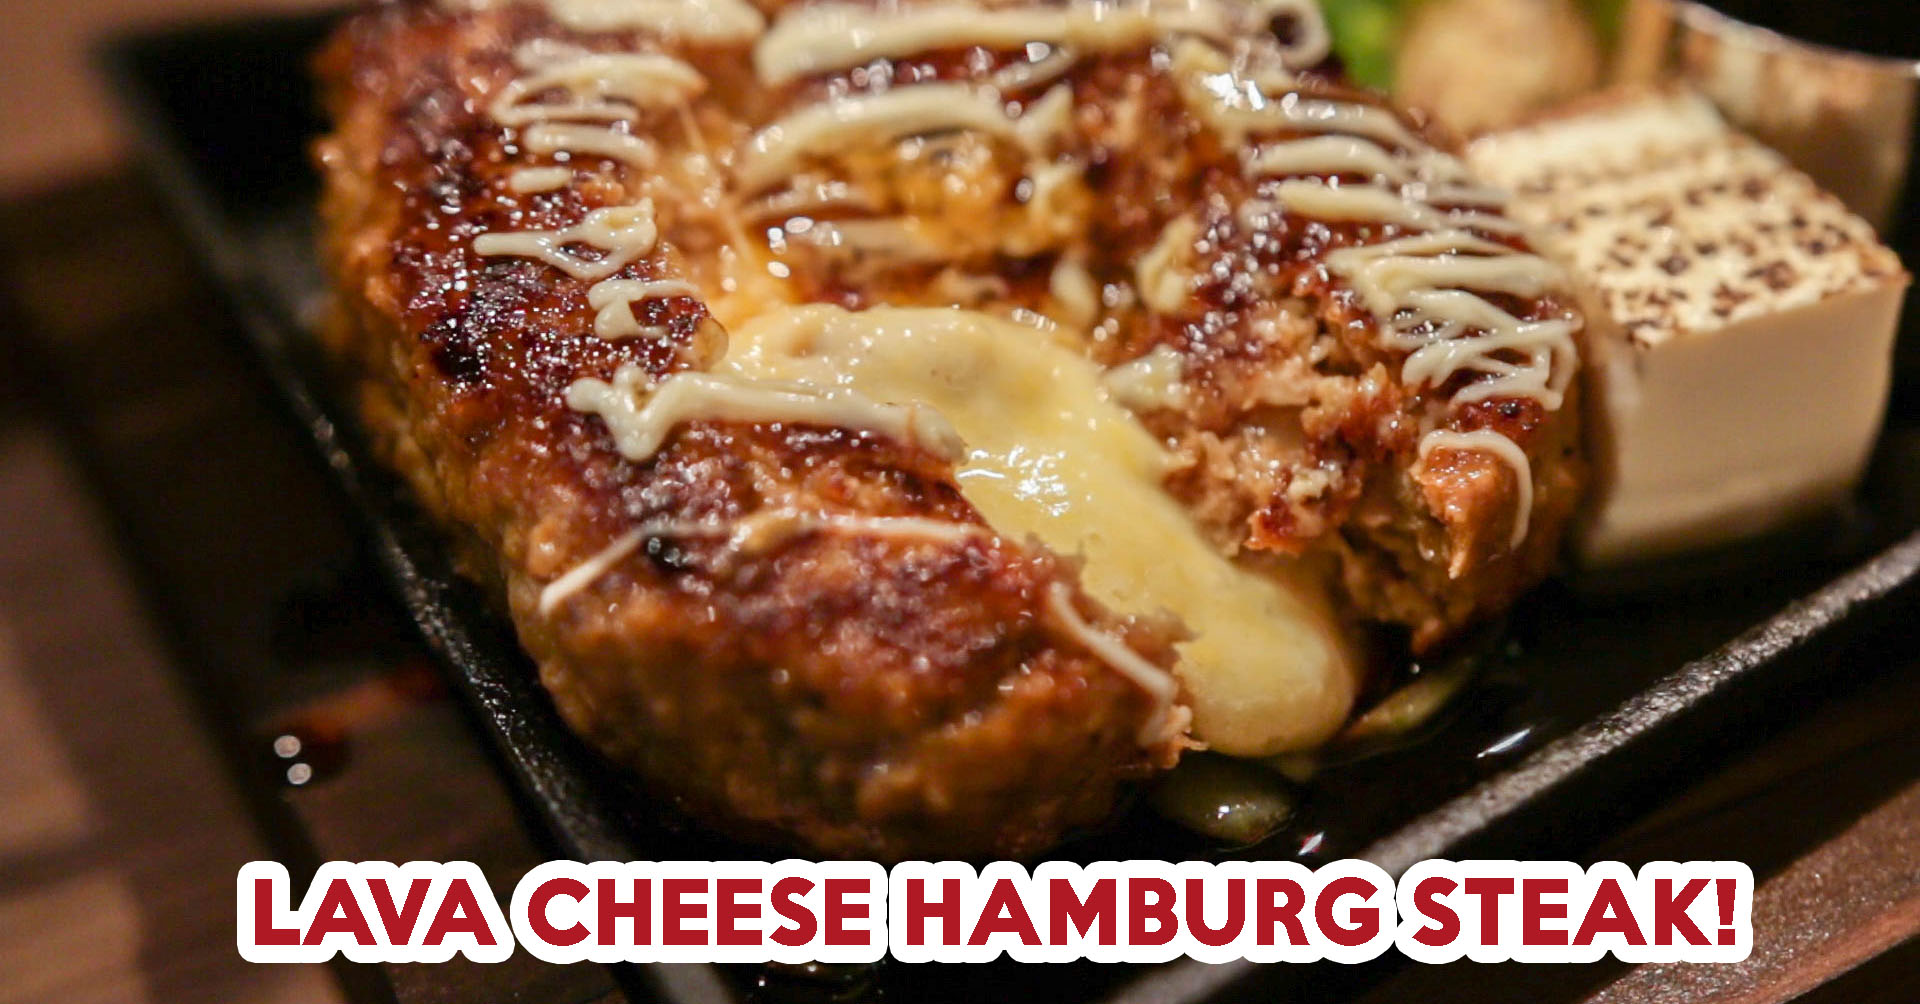 Hamburg Steak Keisuke Review: Japanese-style Beef Hamburg Steak With Hidden Cheese Lava